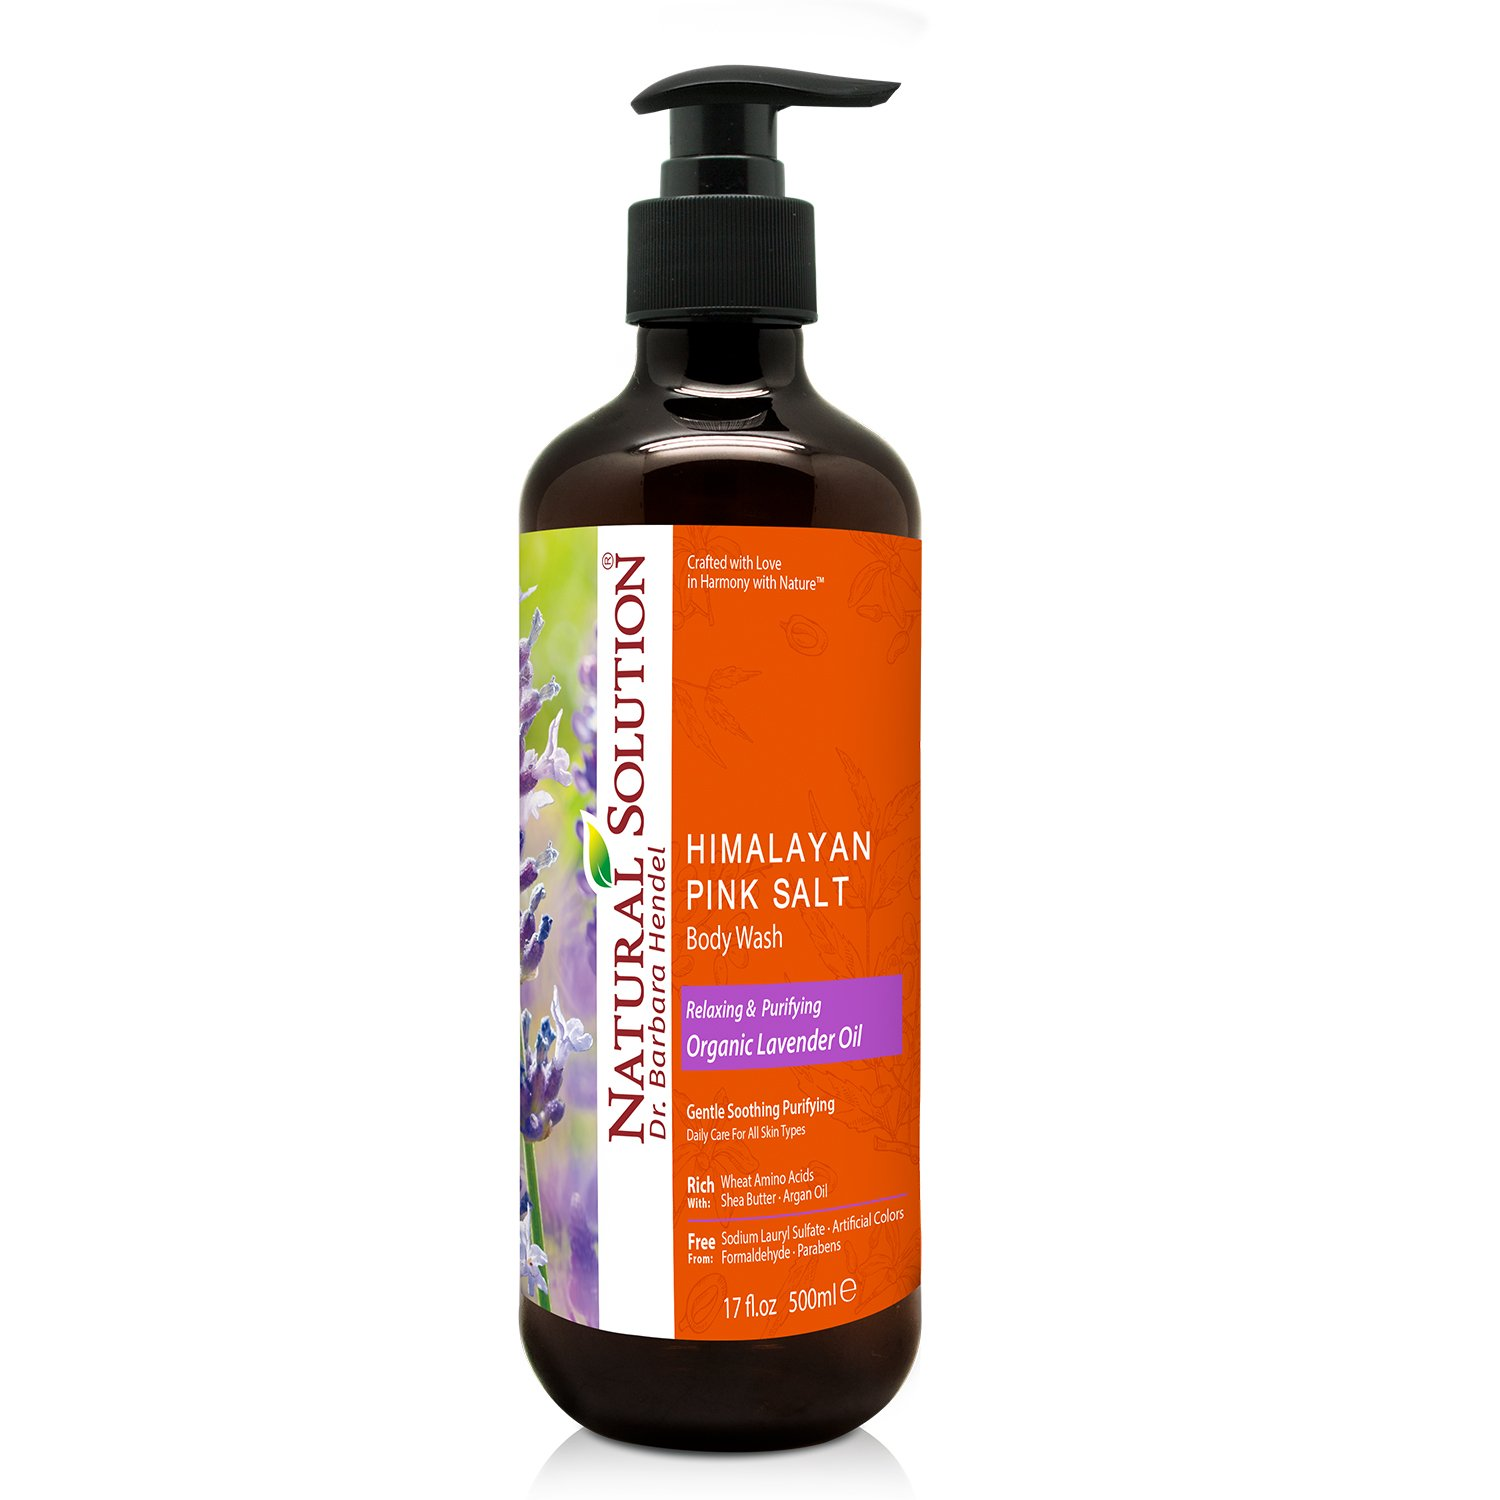 Natural Solution Pink Salt Body Wash, Relax & Purifying Body Wash with Organic Lavender Oil - 500 Ml